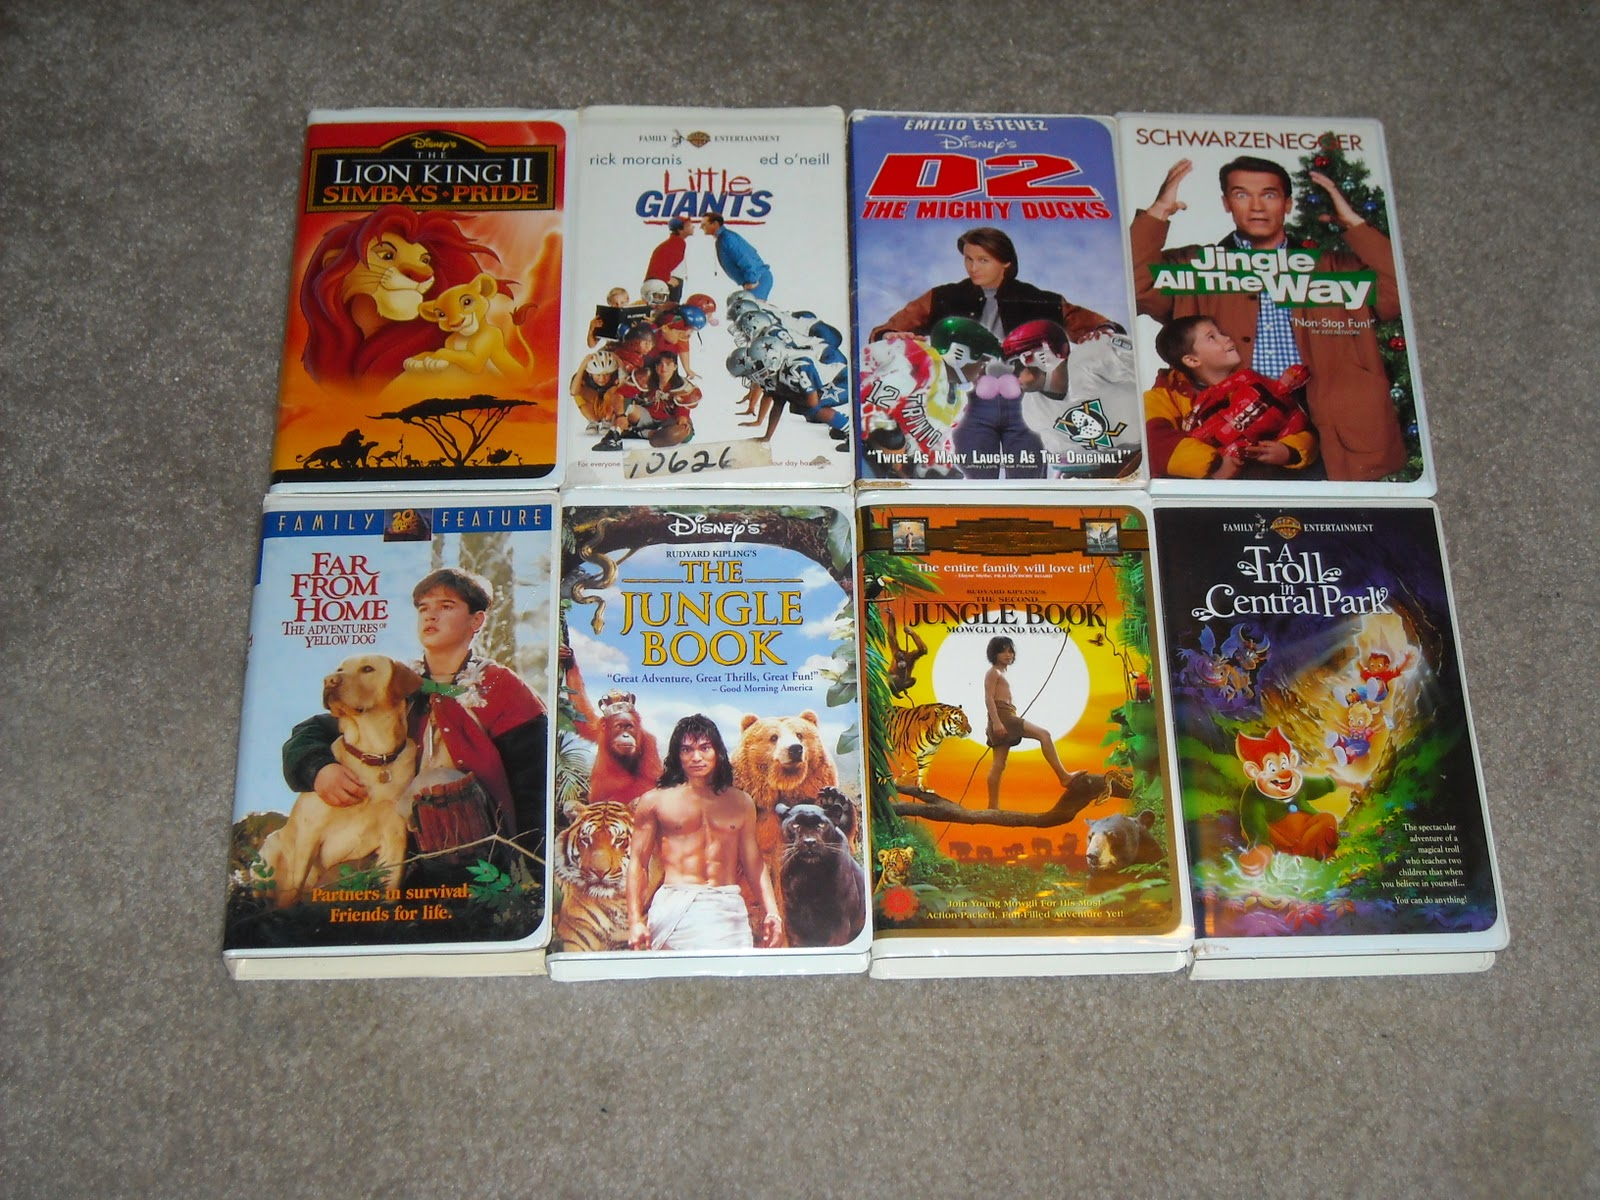 ccsanfran81 items for sale on Ebay: Lot of 8 Classic Walt ...